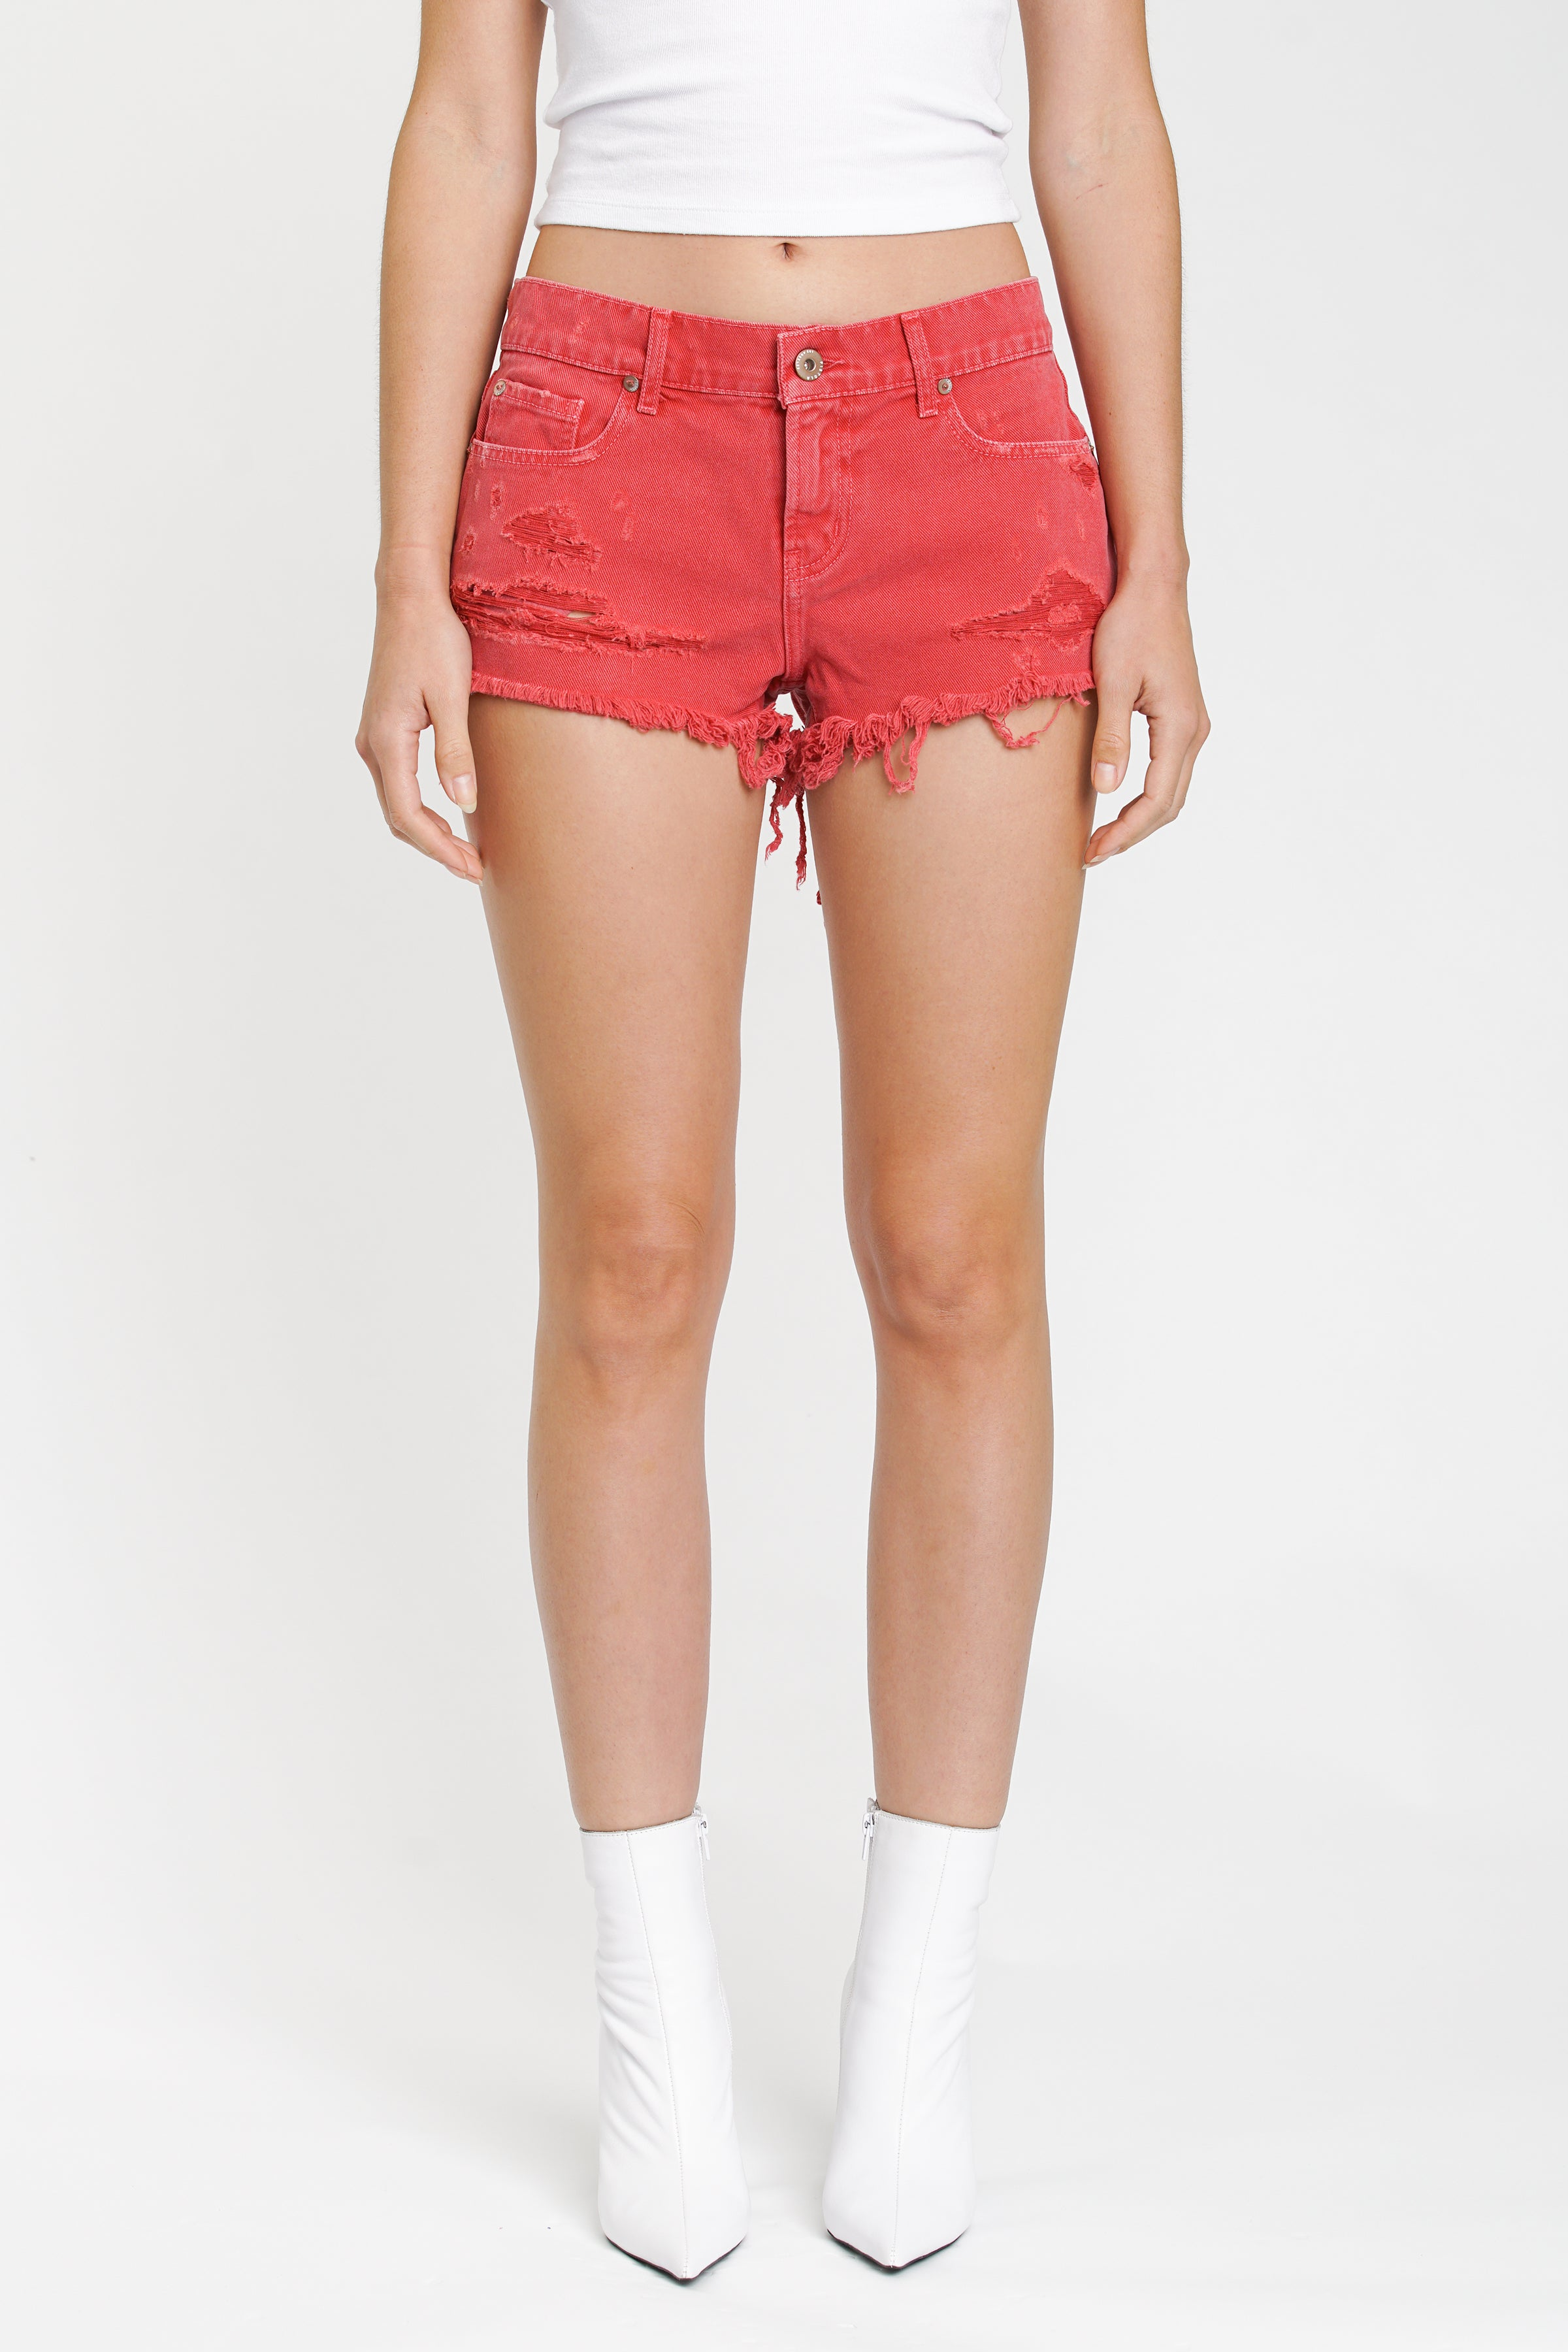 Gigi Low Rise Cut Off - Hibiscus